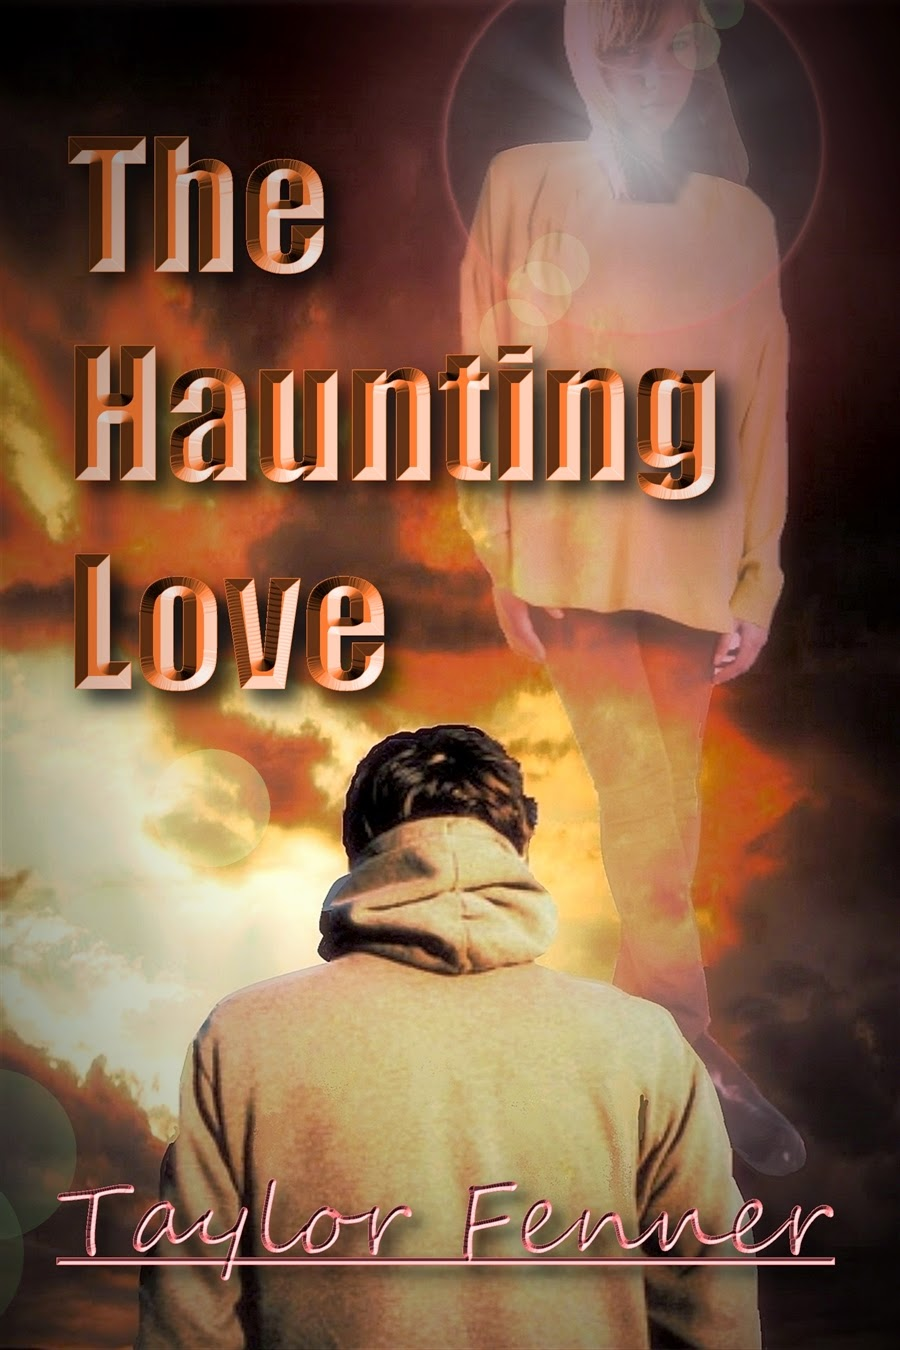 The Haunting Love